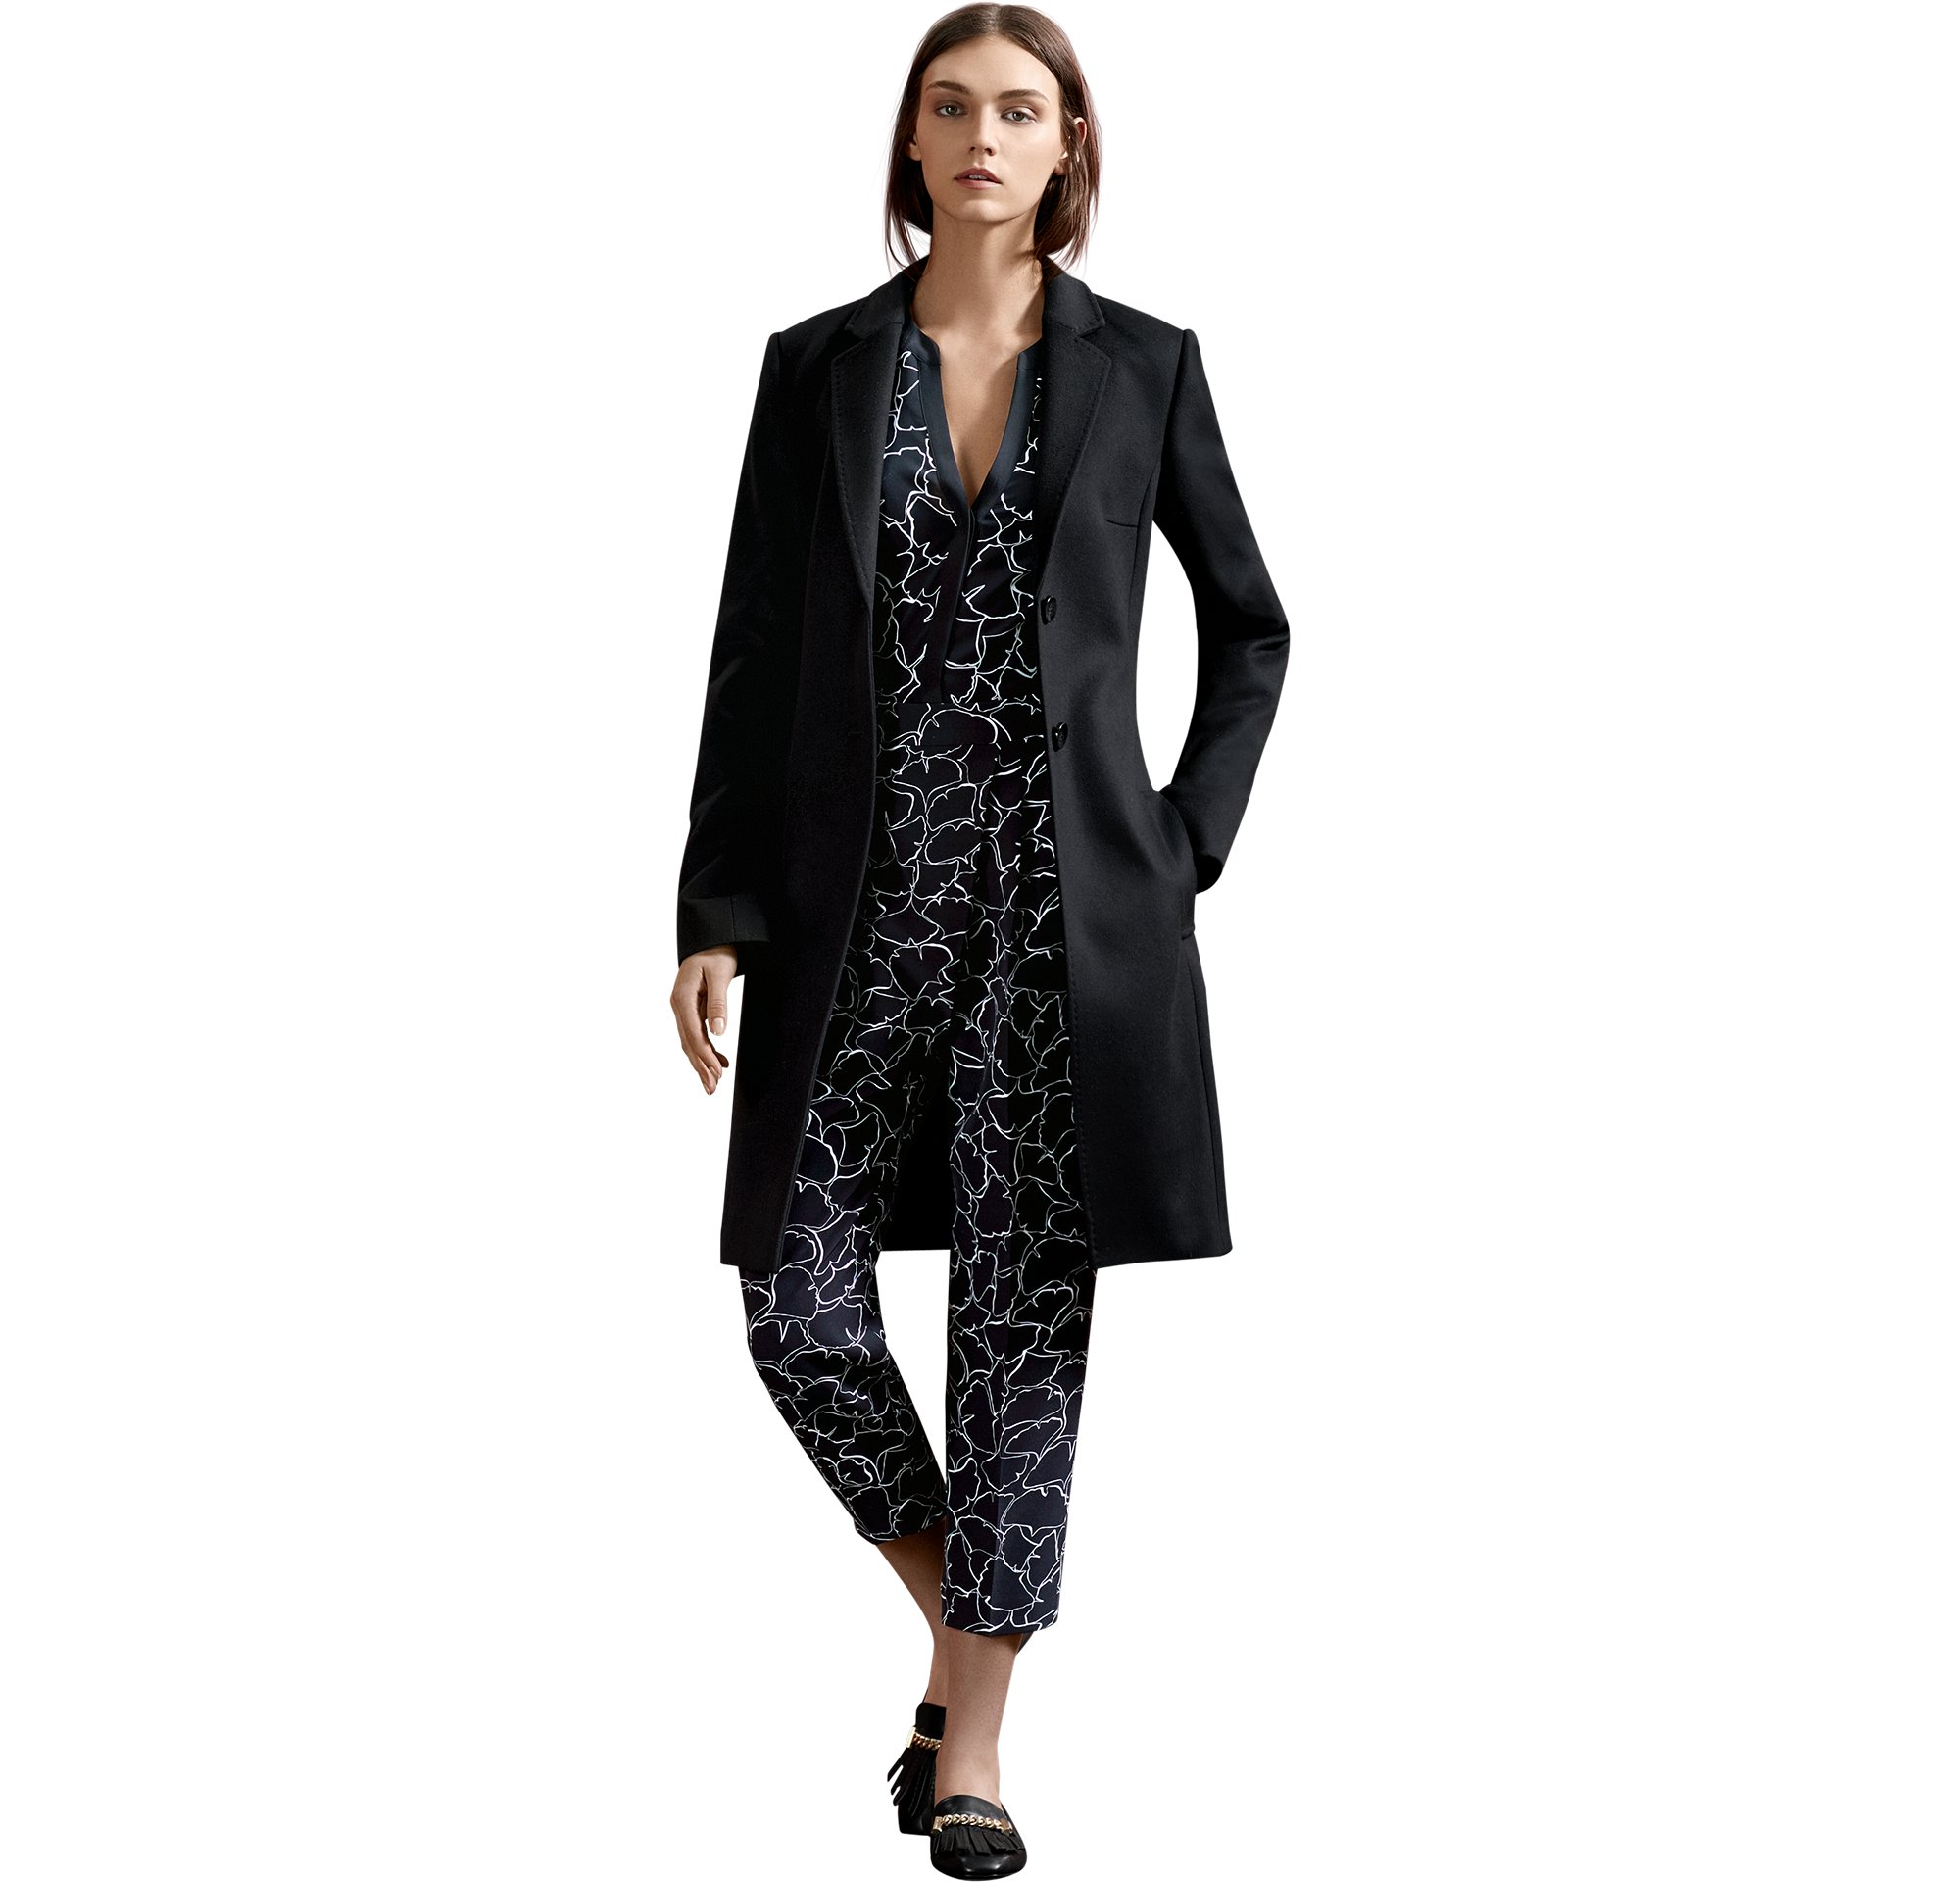 BOSS_Women_CTG_FW17_Look_15,